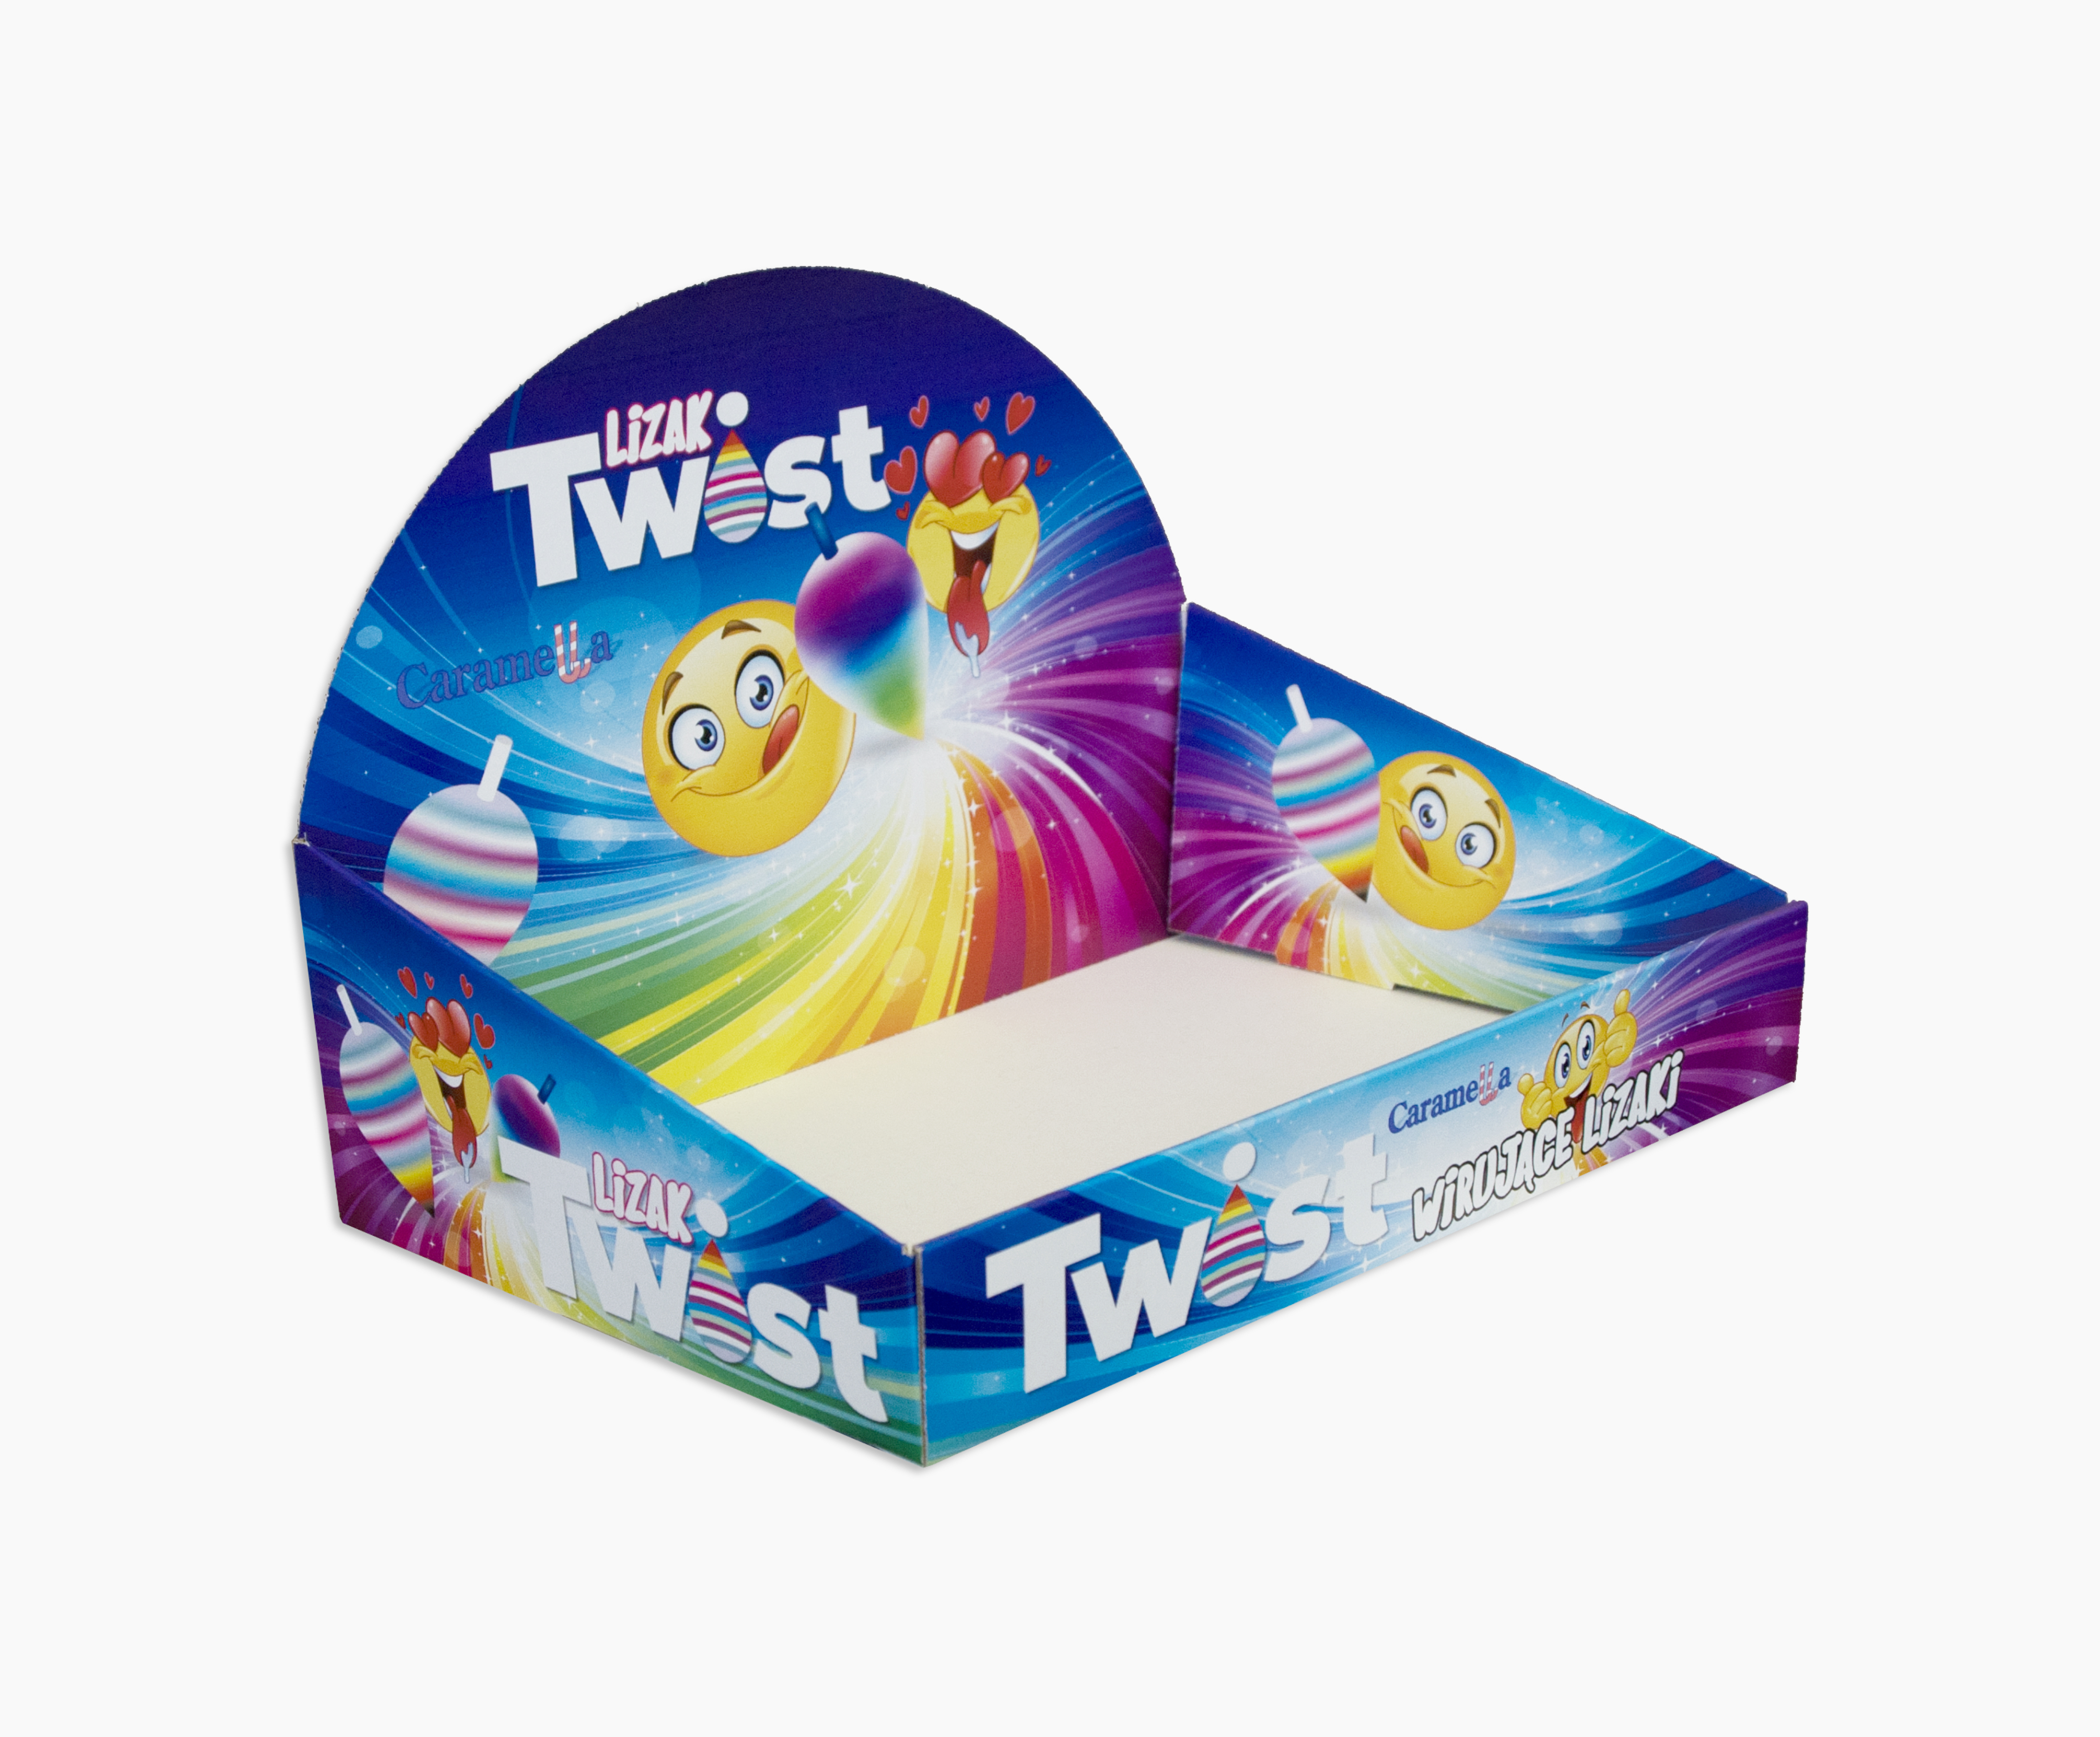 stand31_twister